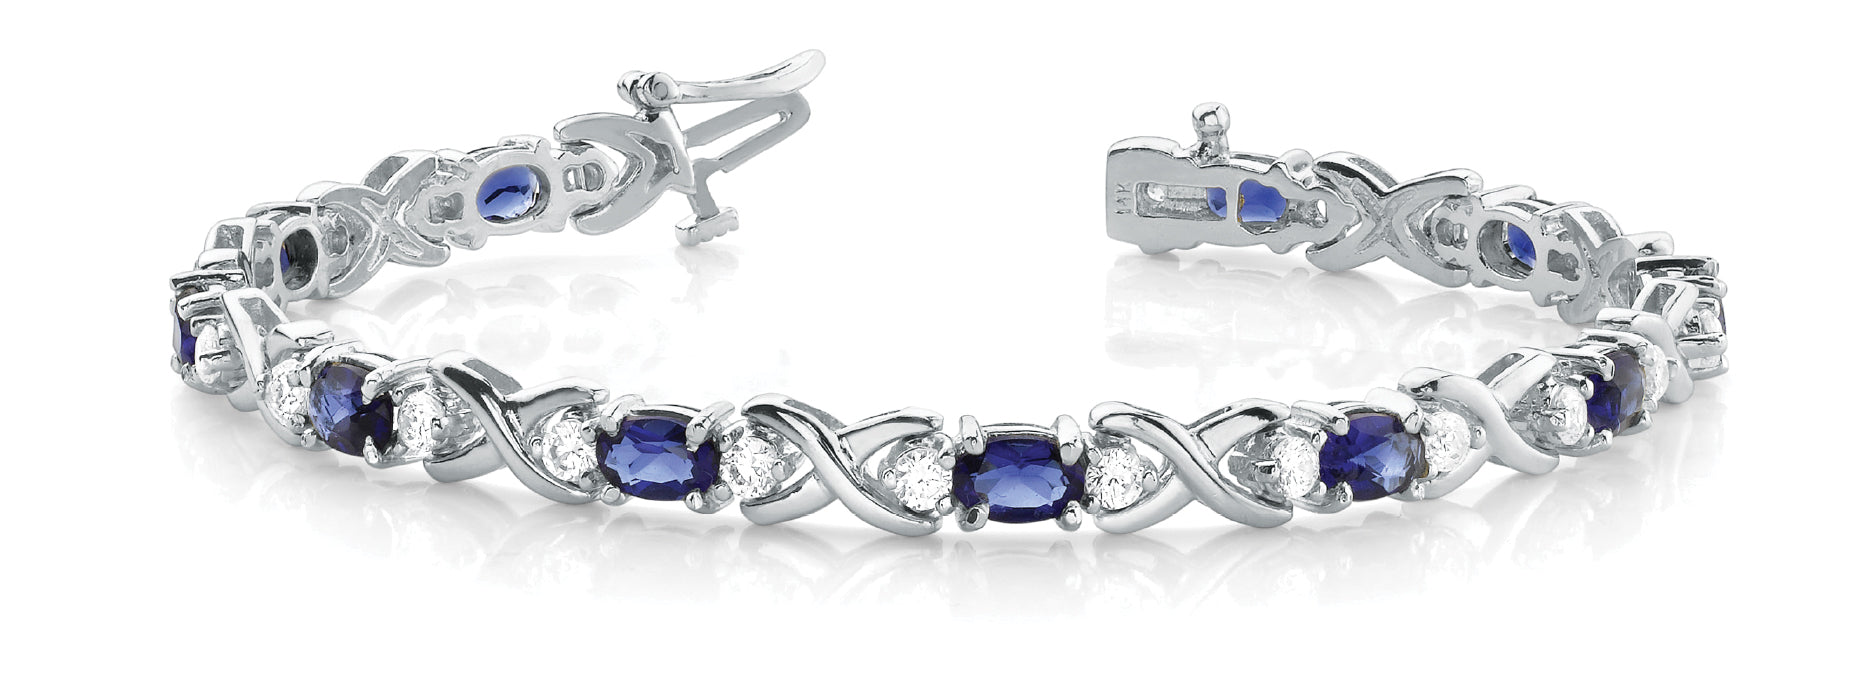 Sapphire 5.90ct & Diamond 0.98ct Bracelet - 14kt White Gold